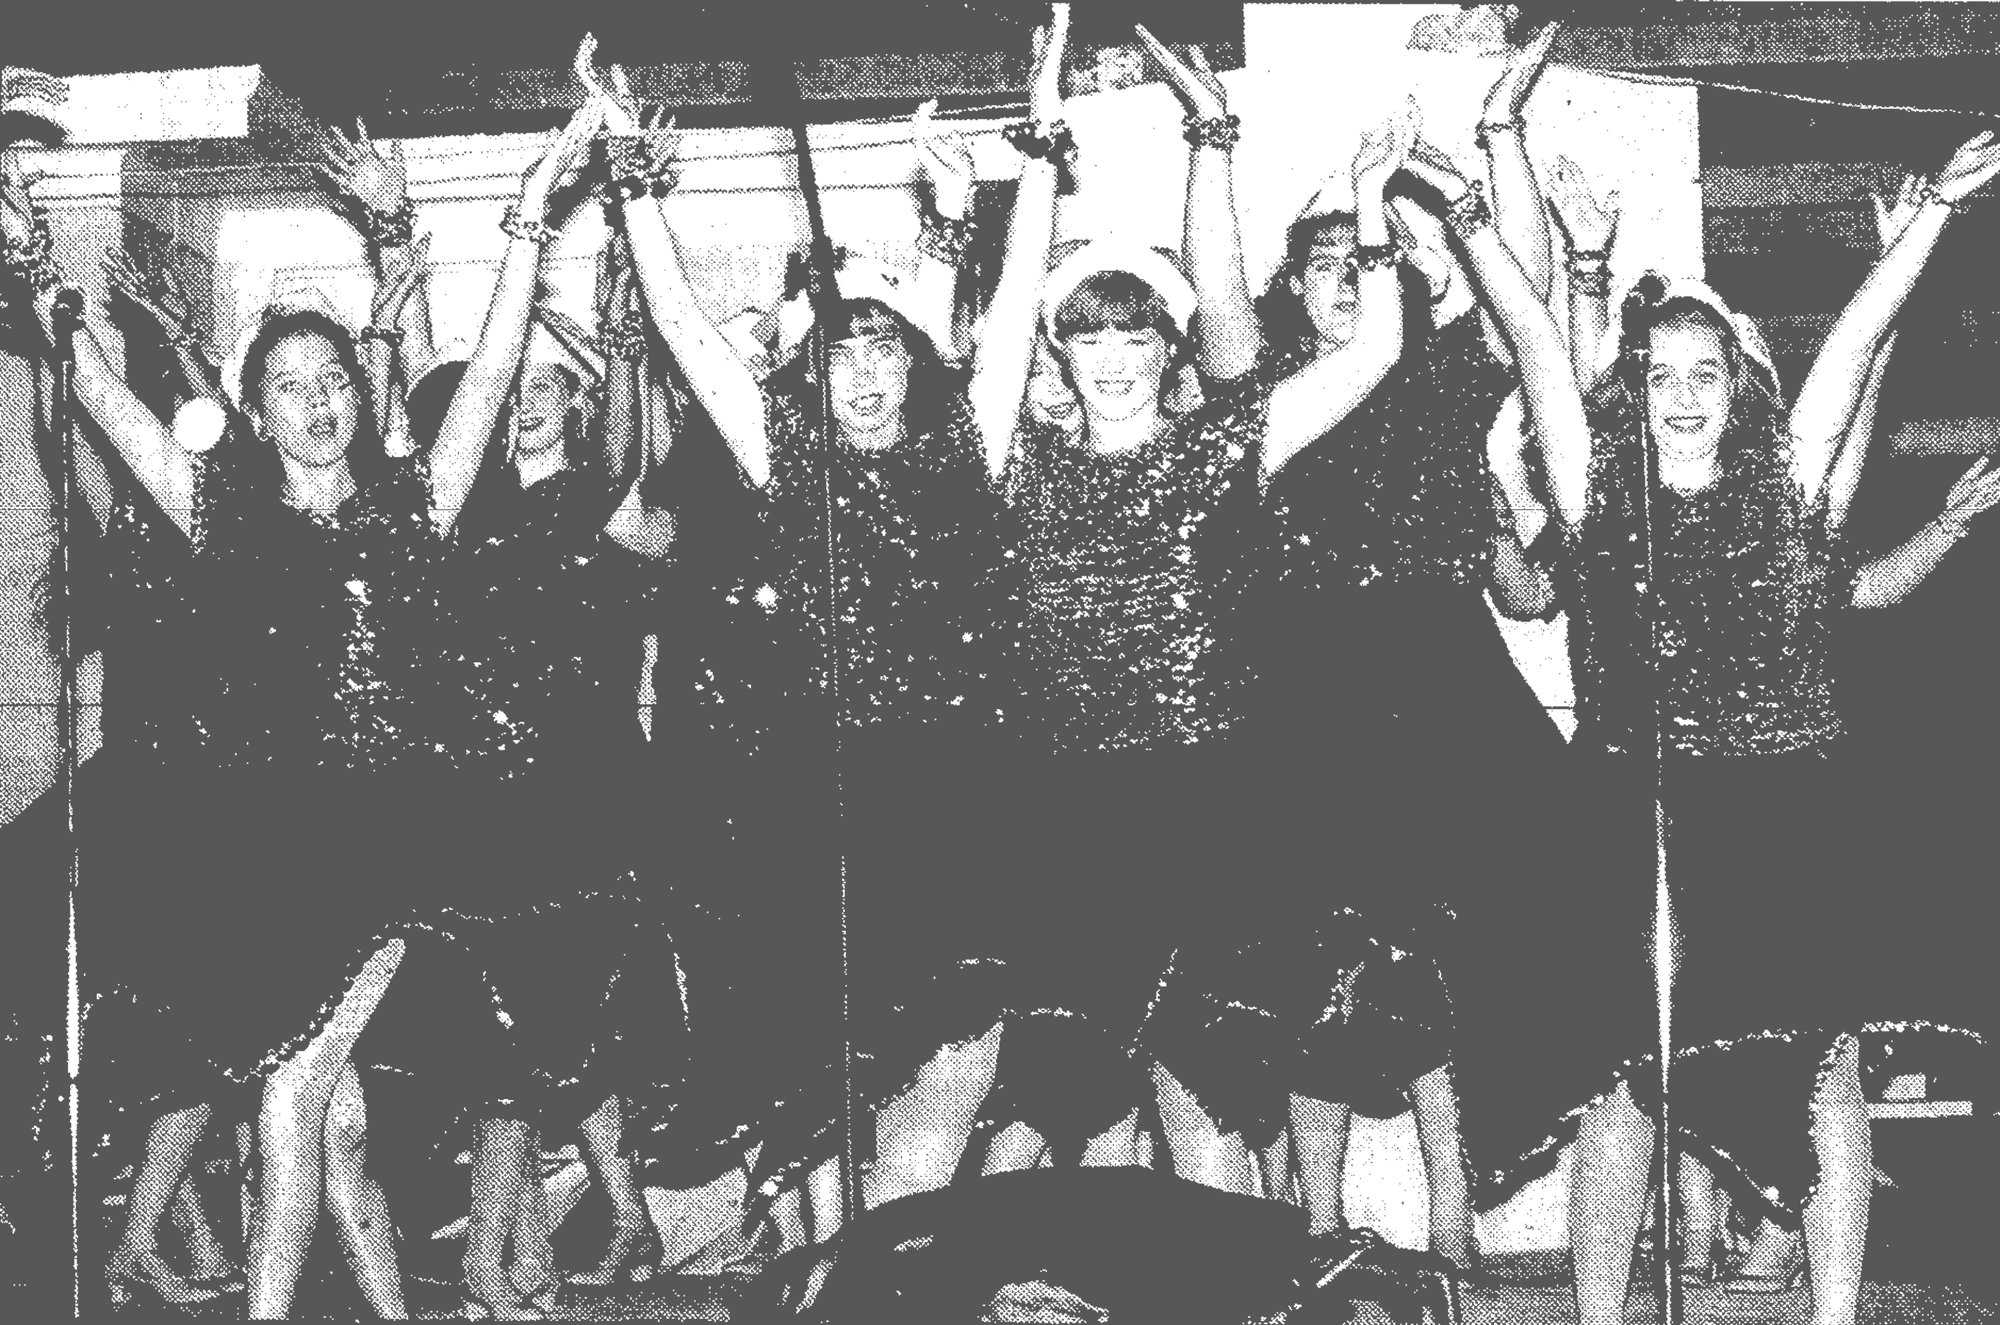 1993 - Students from Sumter High School perform as a show choir in the Pilot Club's 14th-annual lighting of the Swan Lake Christmas tree. The tree lighting attracted a sizable crowd to hear Christmas songs and see the lights.